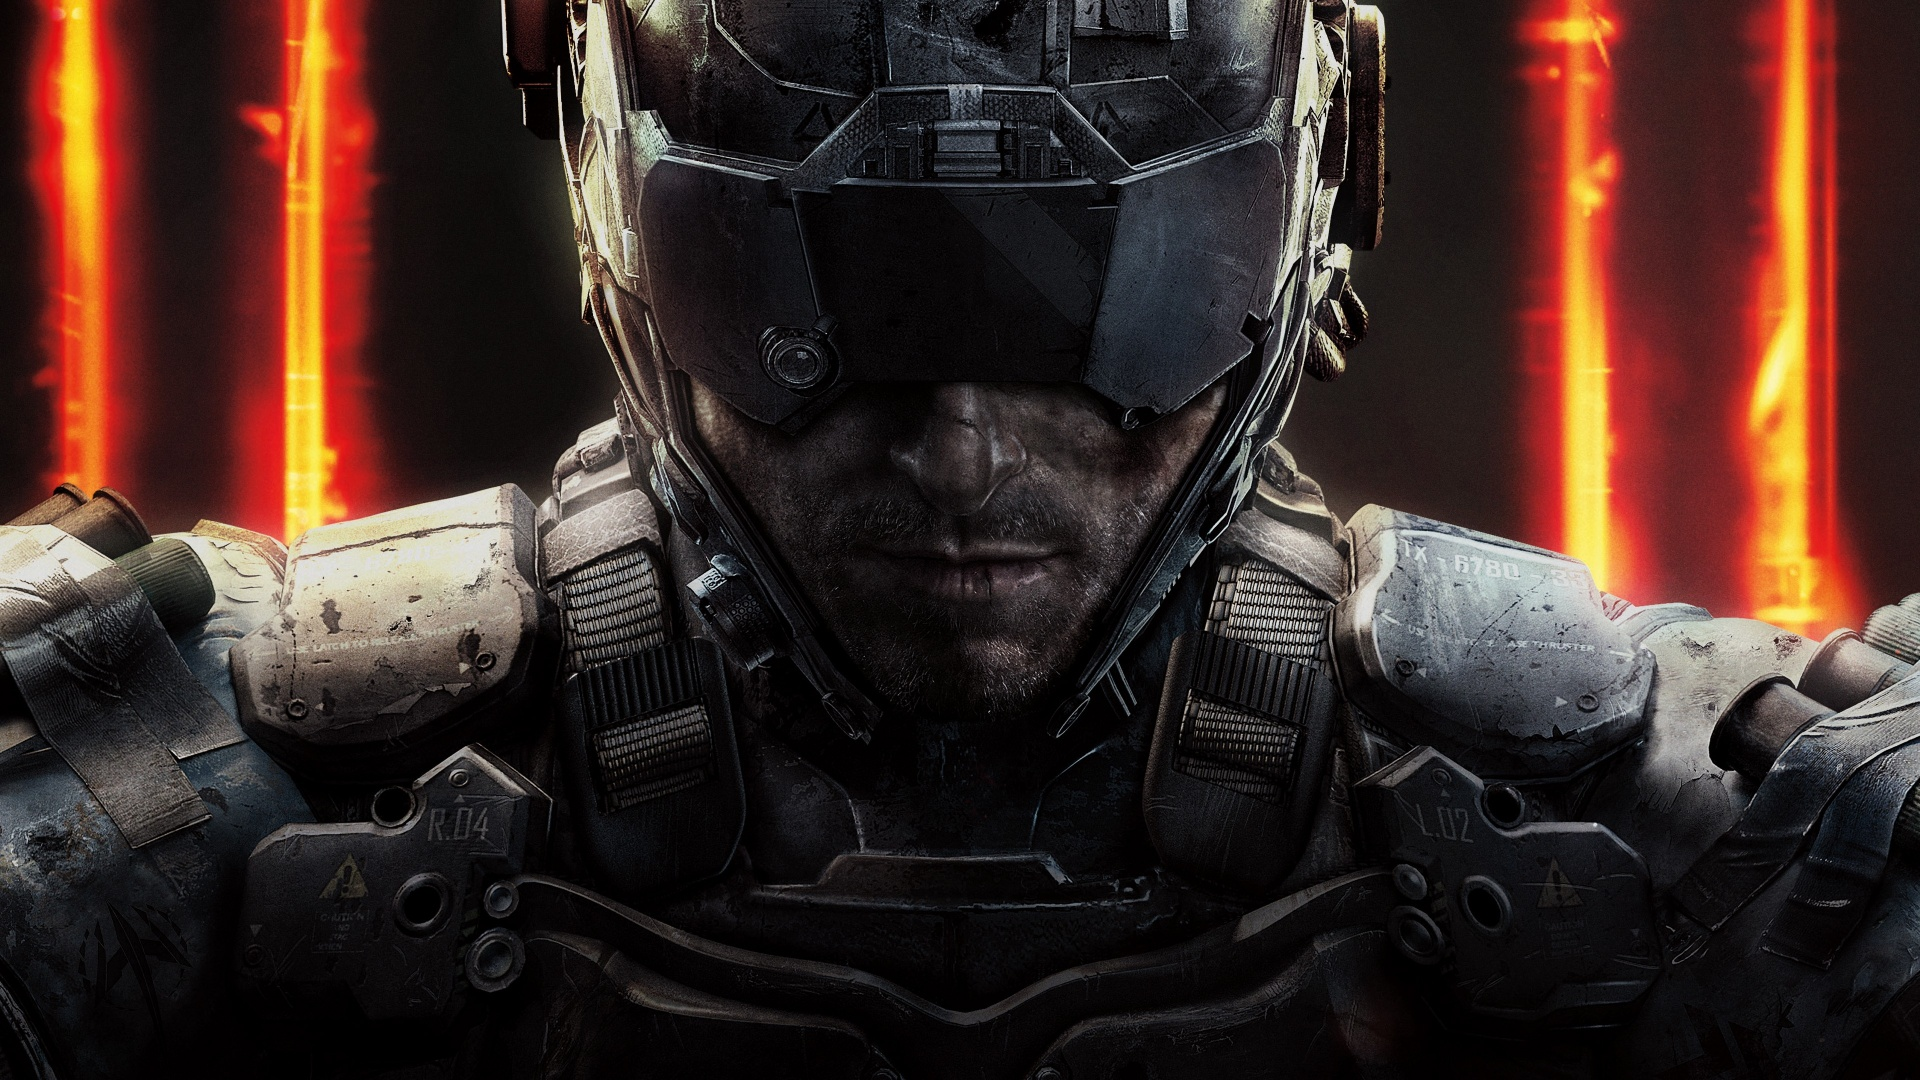 Call Of Duty Black Ops 3 4k Wallpapers   1920x1080   807113 1920x1080